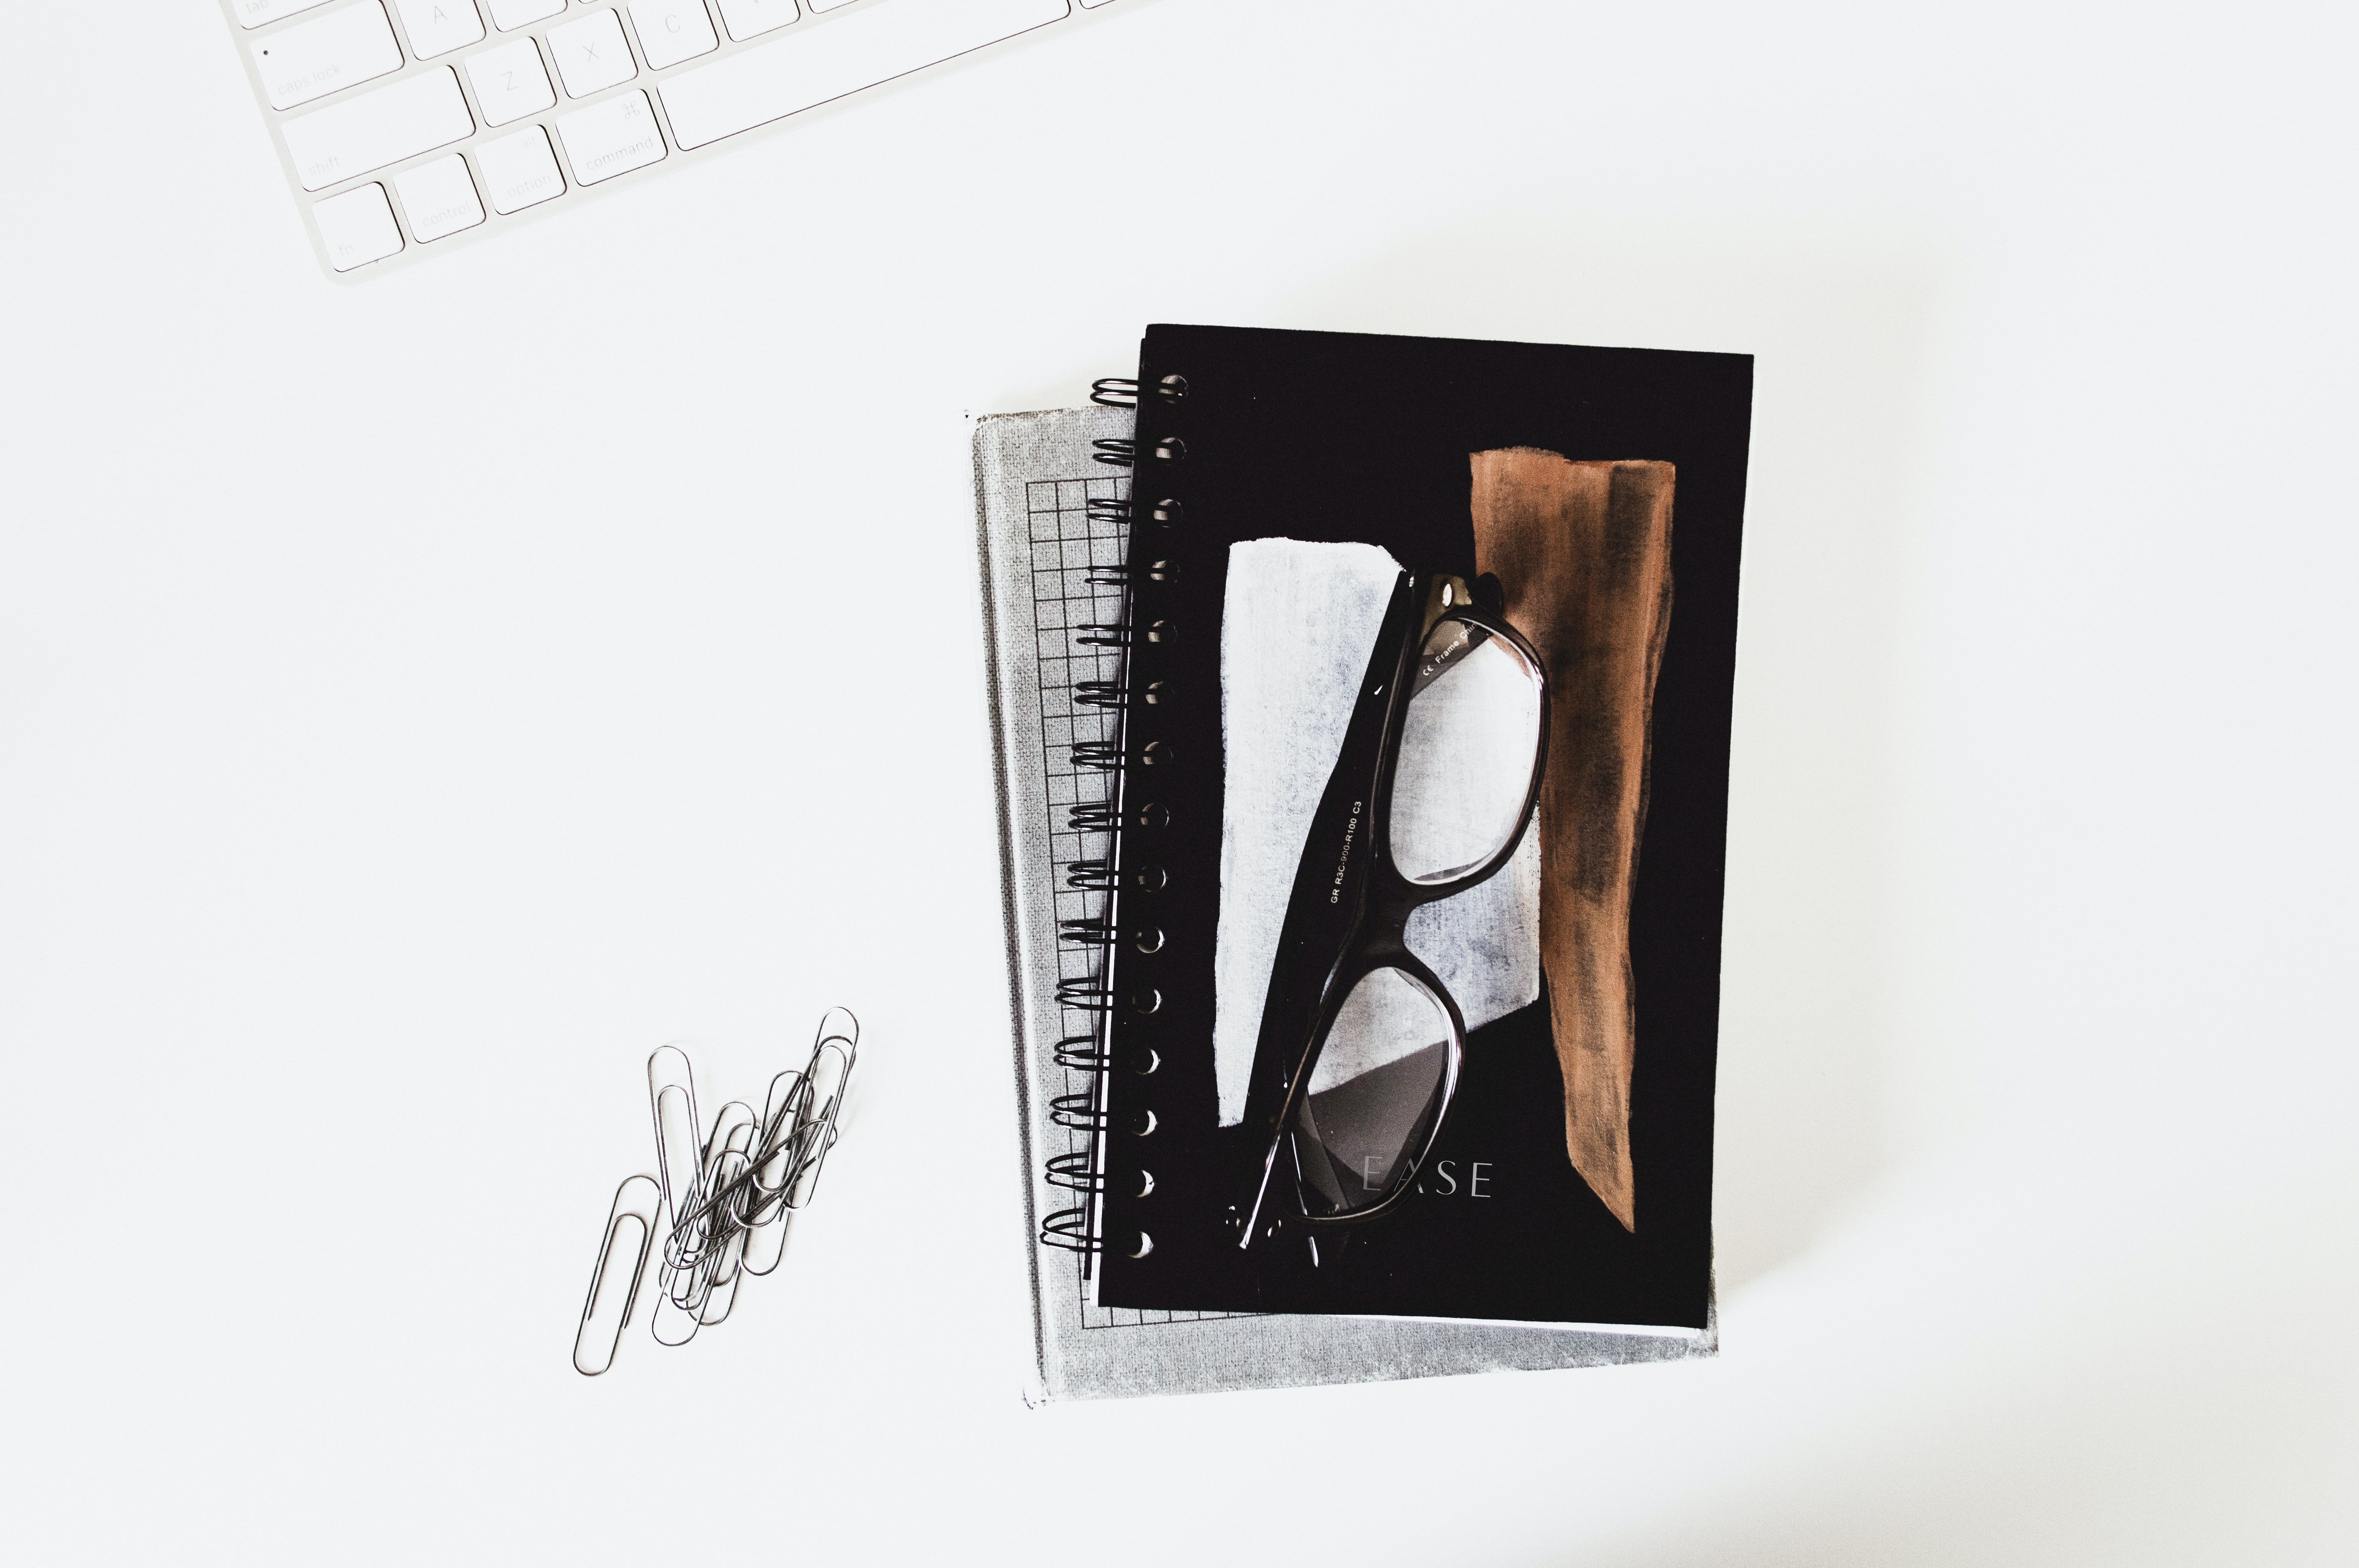 eyeglasses with black frames on book